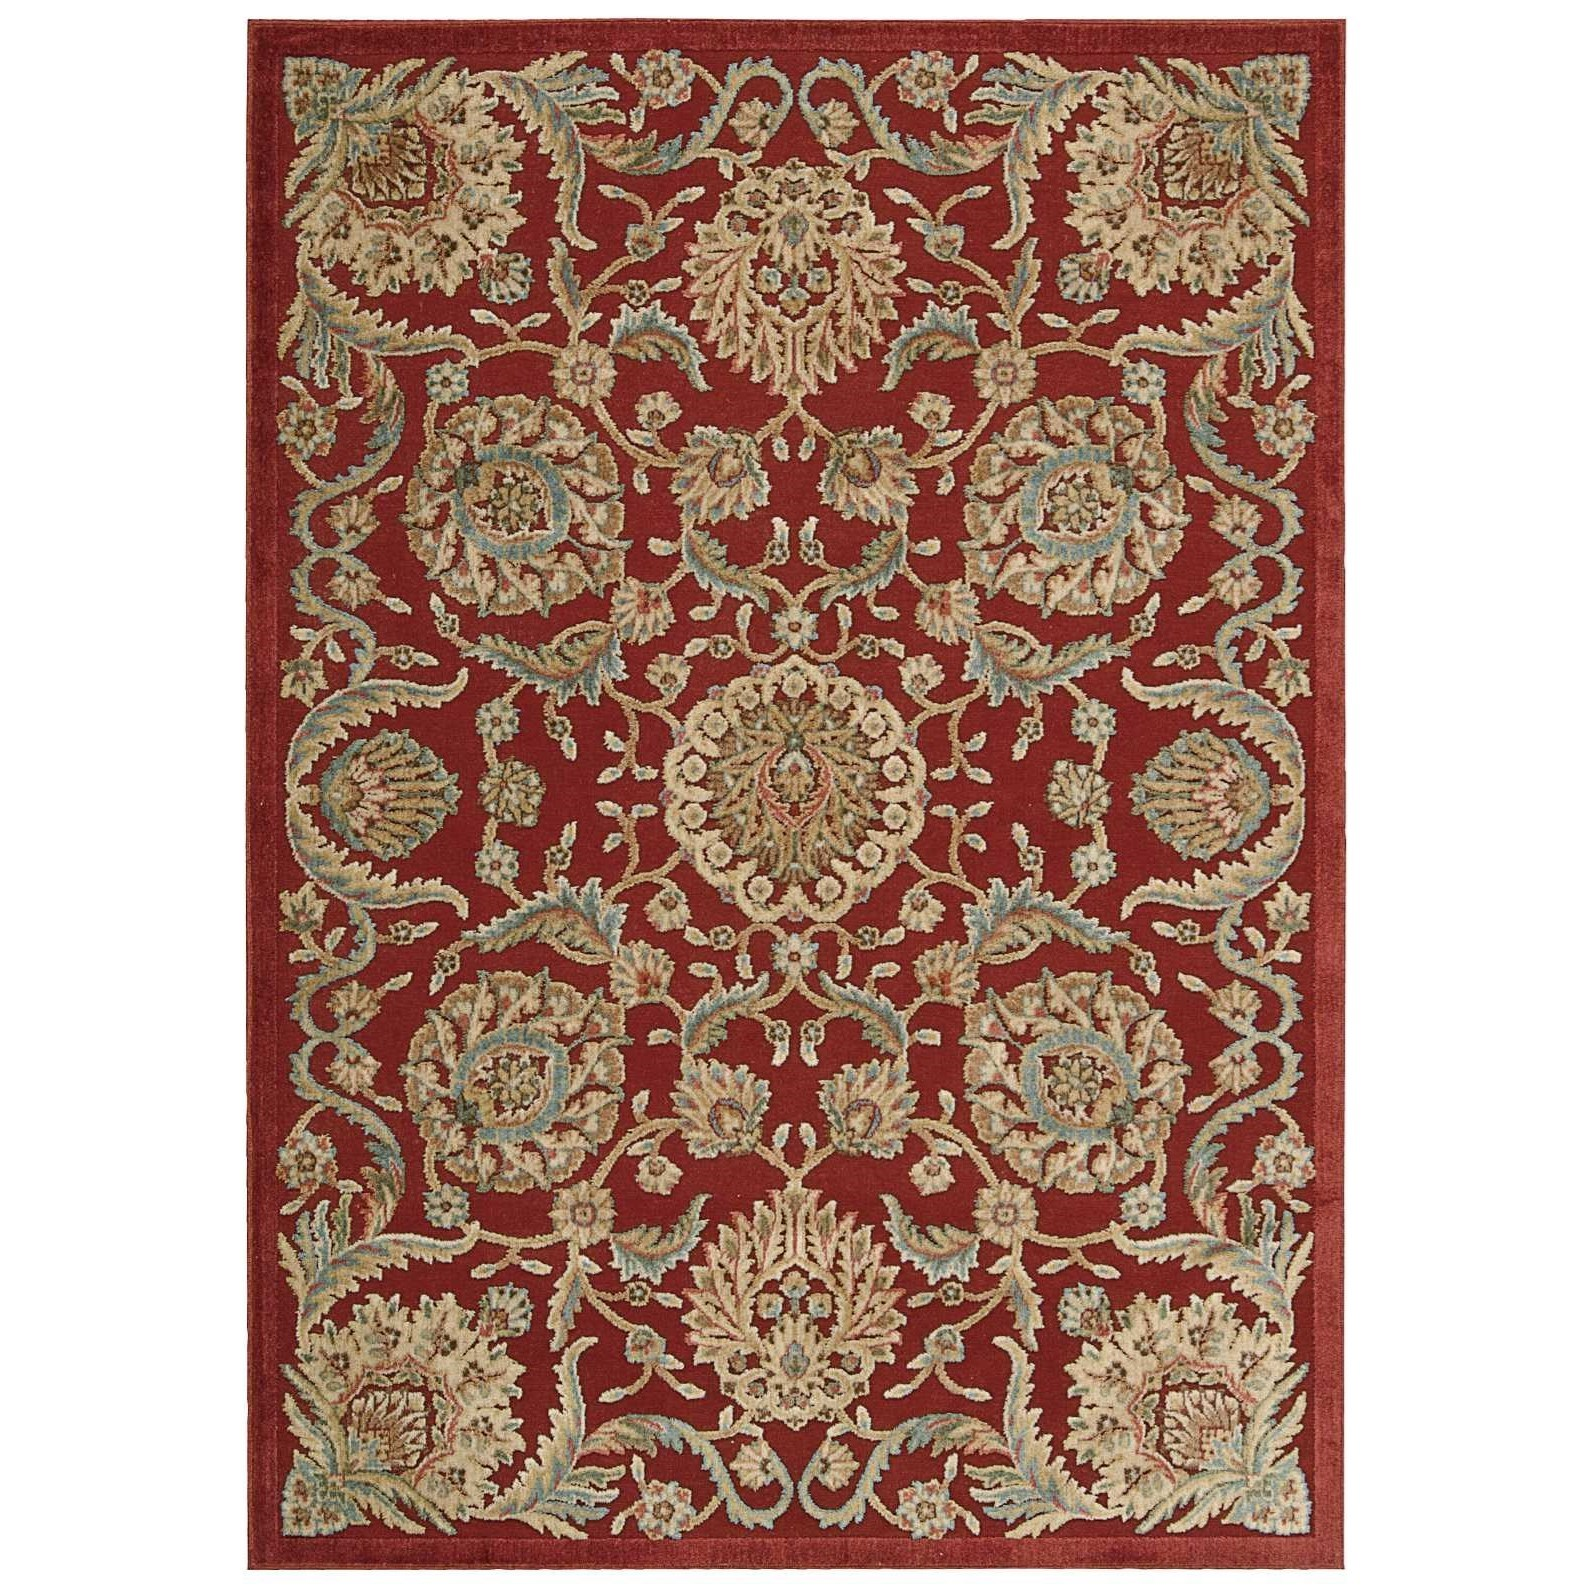 """Nourison Graphic Illusions 2'3"""" x 3'9"""" Red Rectangle Rug - Item Number: GIL17 RED 23X39"""